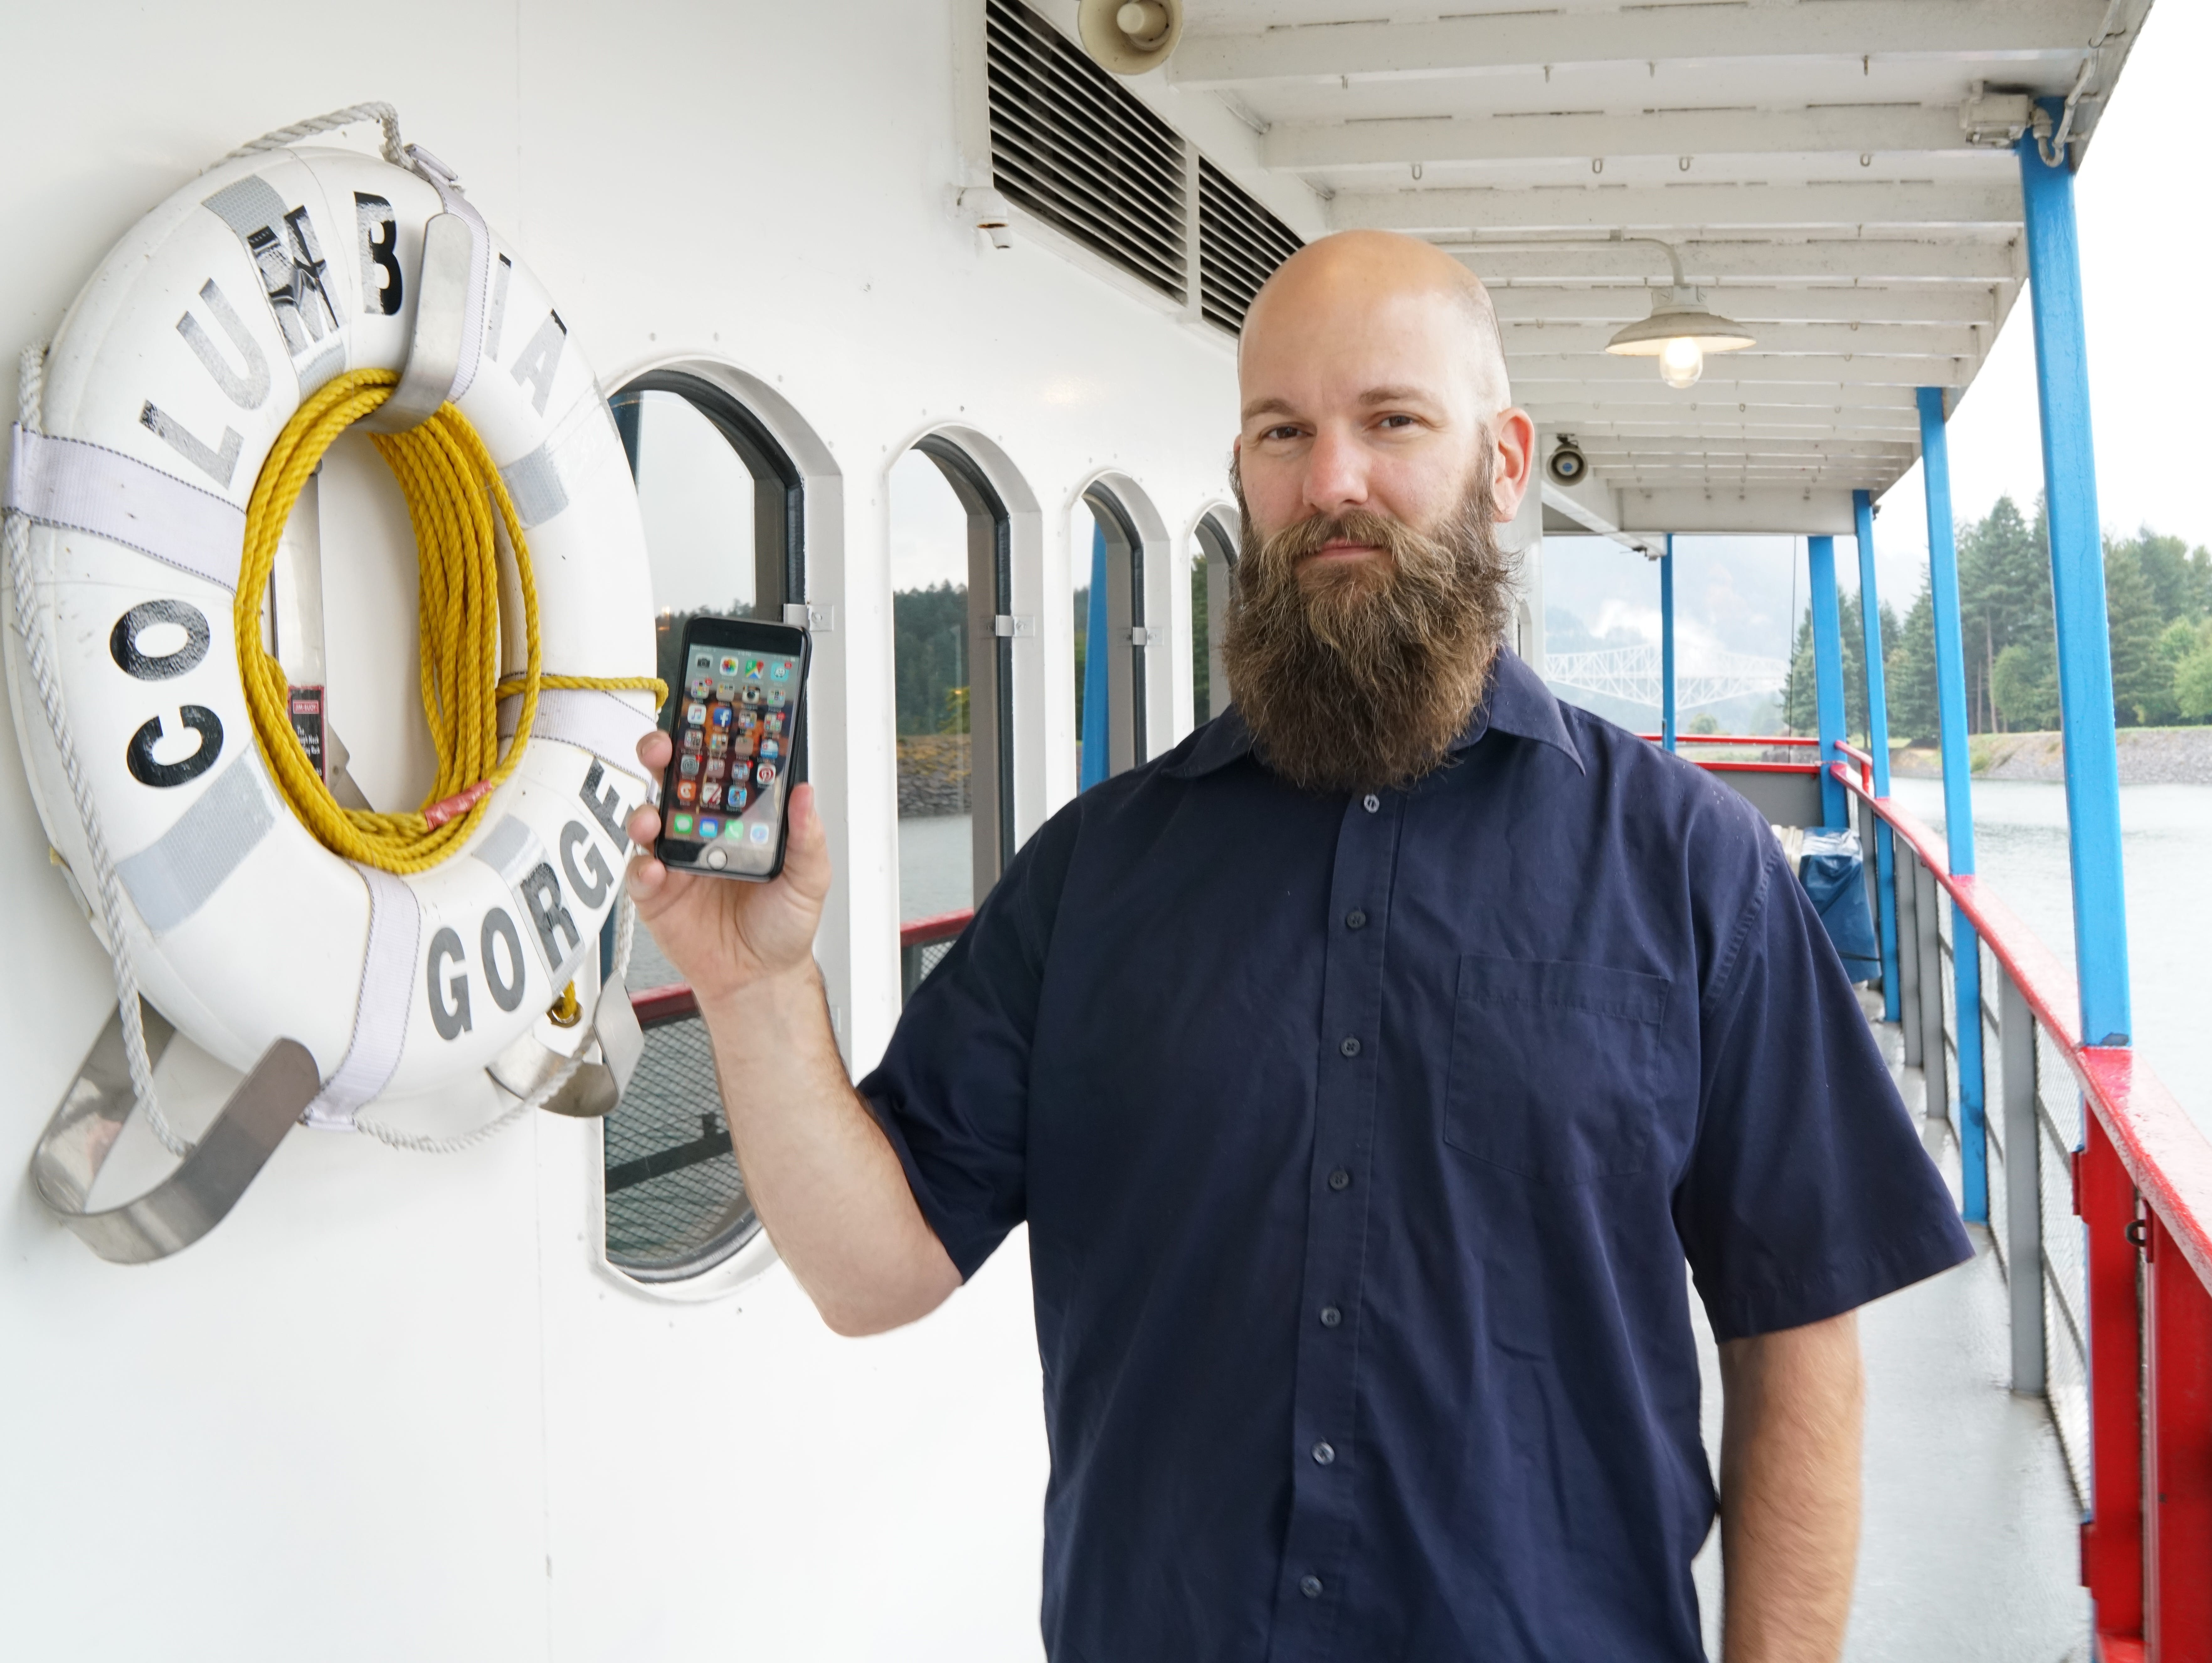 Jeff Caldwell, general manager of the Portland Spirit sternwheeler, buys a new iPhone every year